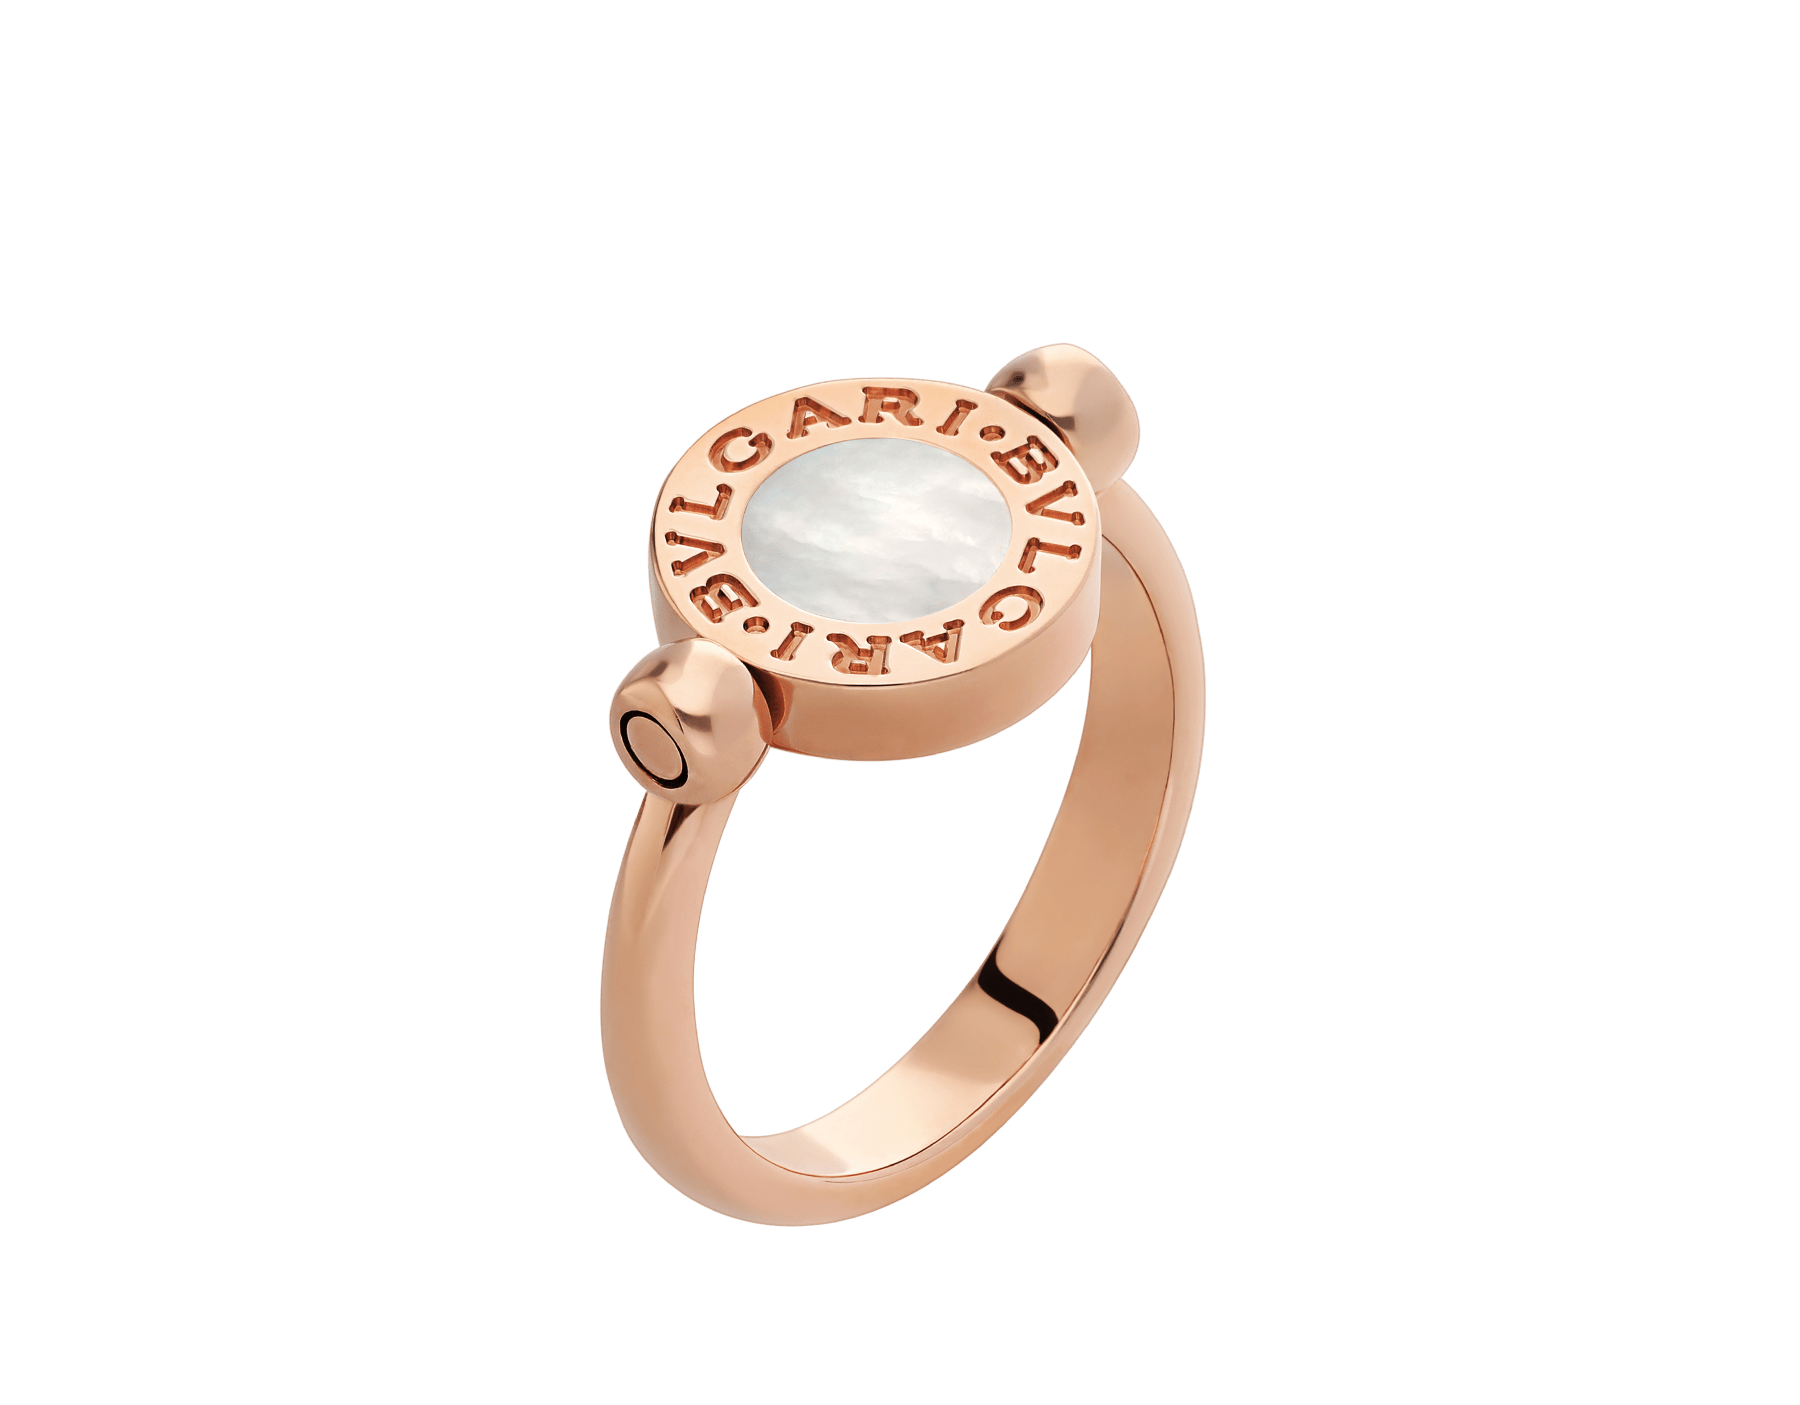 BVLGARI BVLGARI 18 kt rose gold flip ring set with mother-of-pearl and pavé diamonds AN857171 image 3